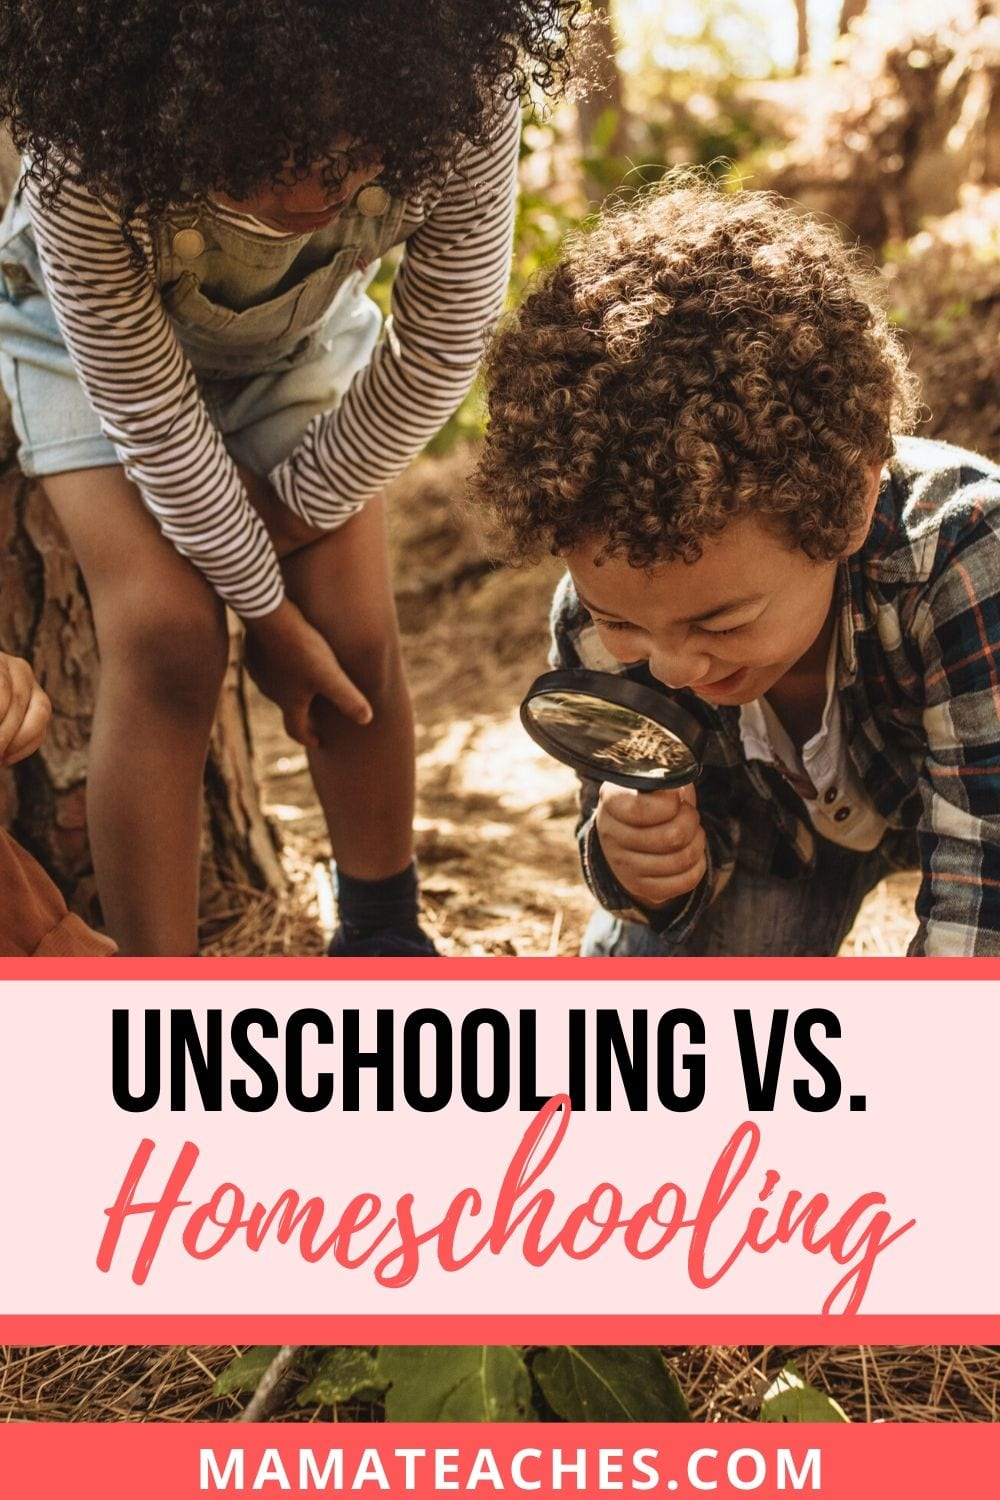 Unschooling vs Homeschooling can look like kids exploring the world around them as they go for a walk in the wood!